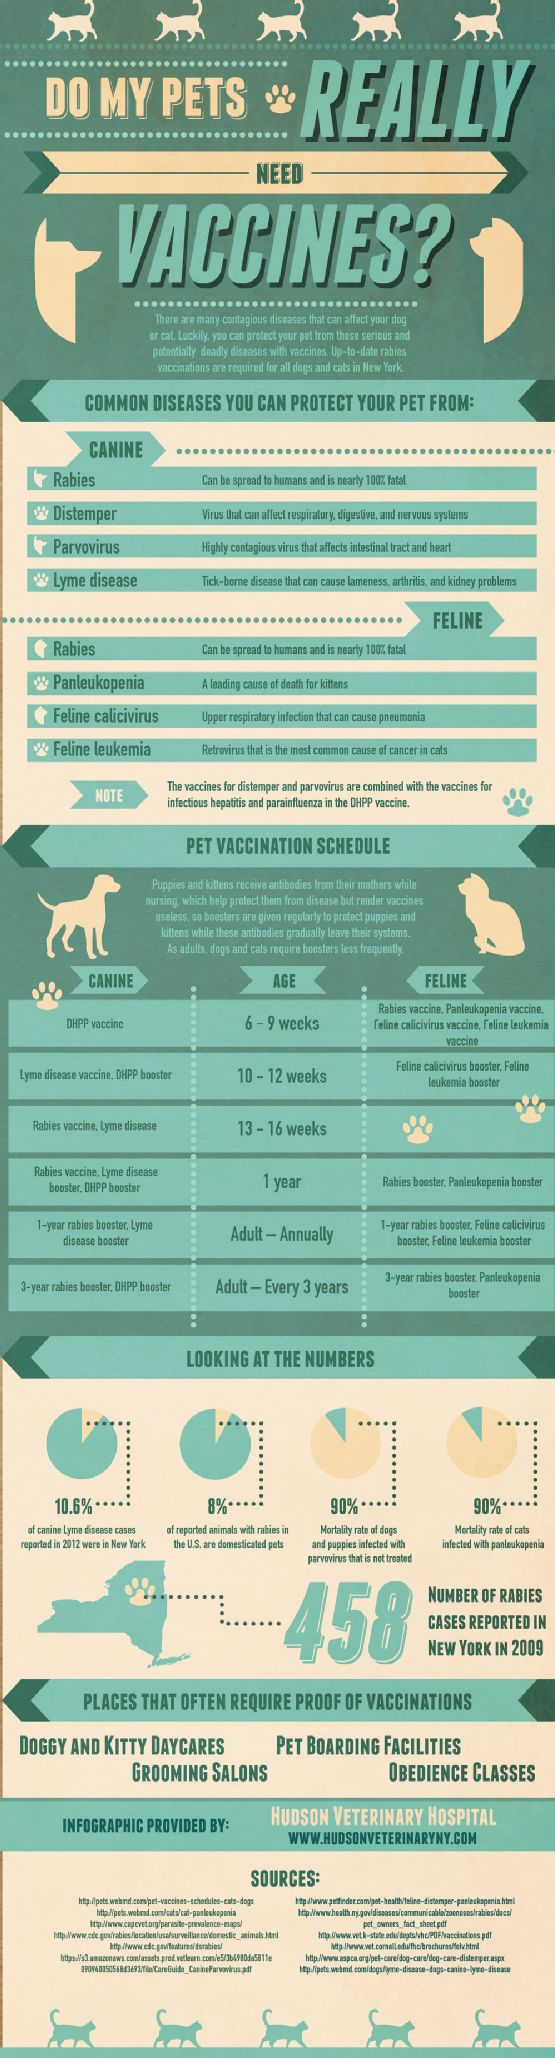 Do you know what vaccinations your pet needs? What about when he needs them? This infographic contains a vaccine schedule for both dogs and cats.